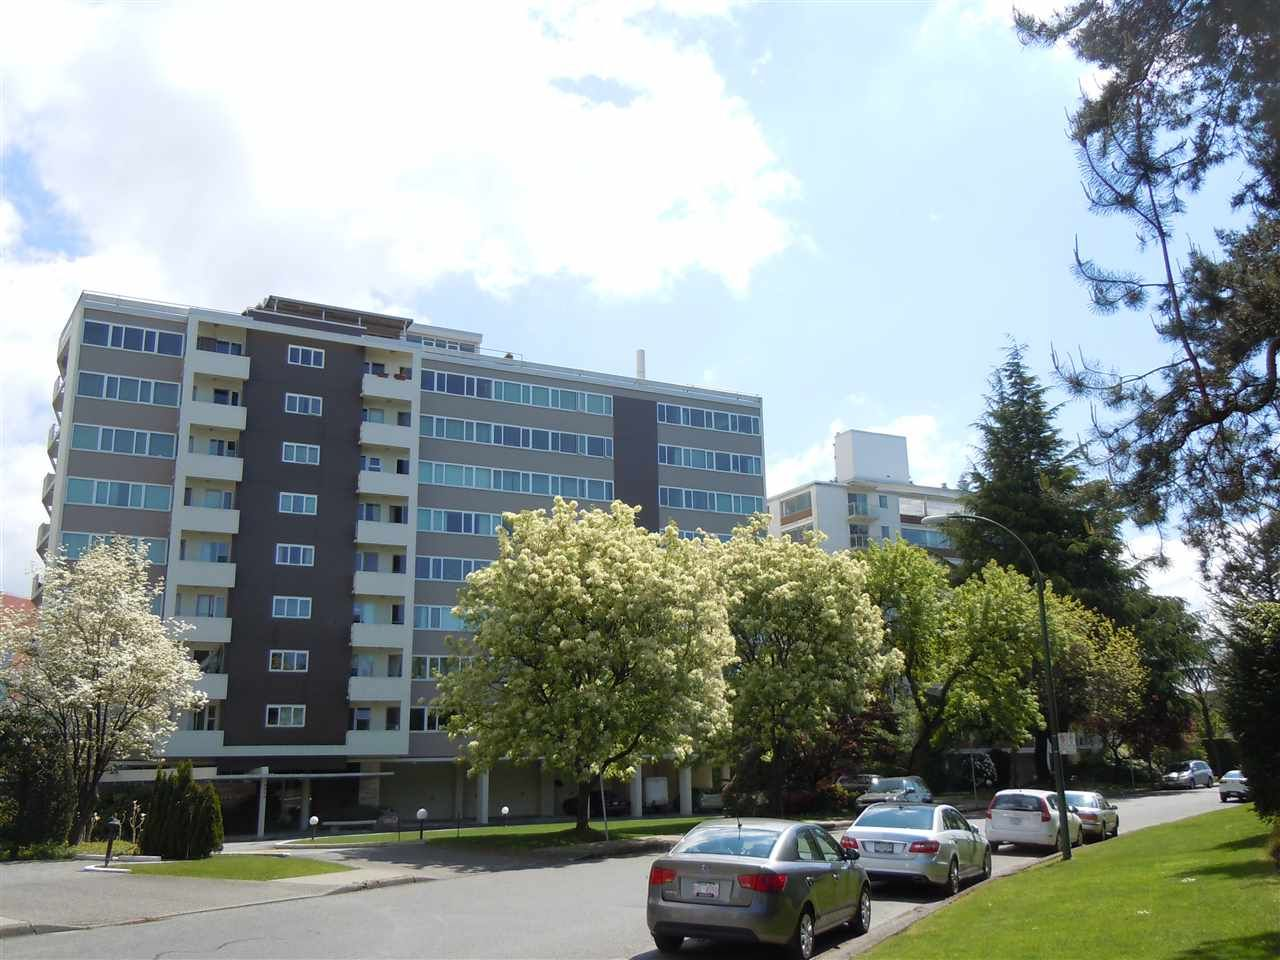 "Photo 1: Photos: 504 6026 TISDALL ST in Vancouver: Oakridge VW Condo for sale in ""Oakridge Towers"" (Vancouver West)  : MLS®# R2021576"